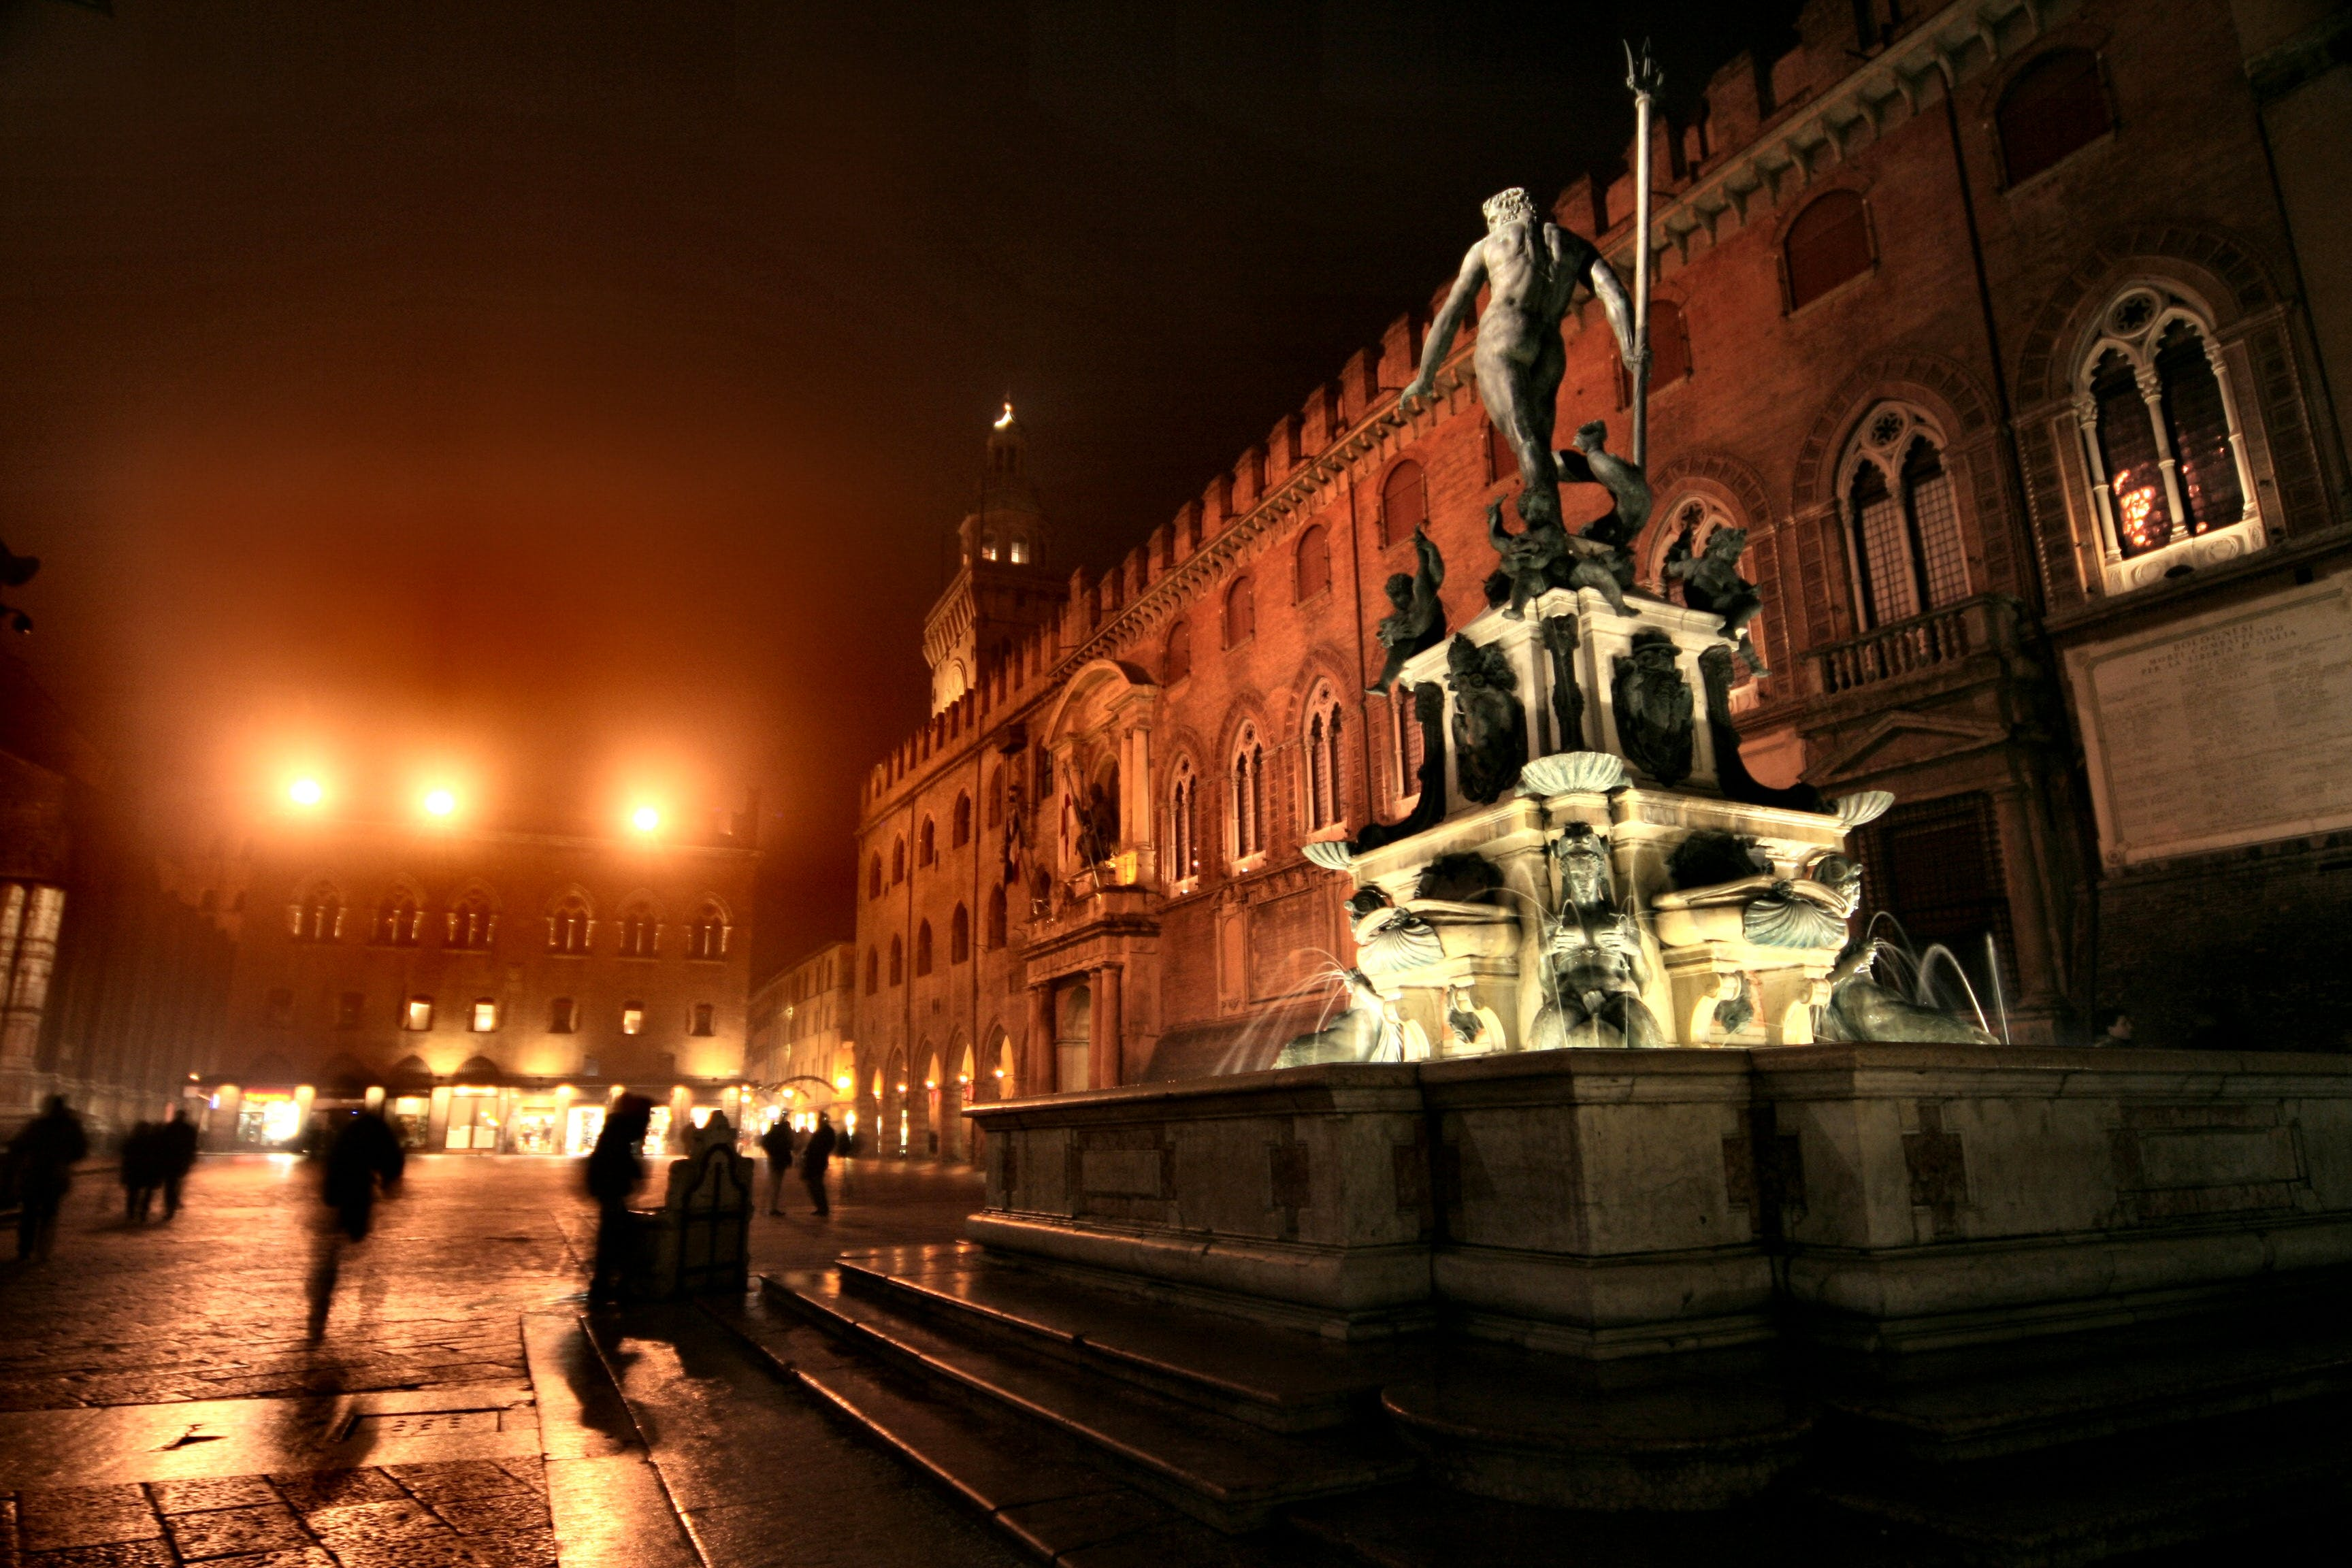 Monument With Water Fountain During Nighttime